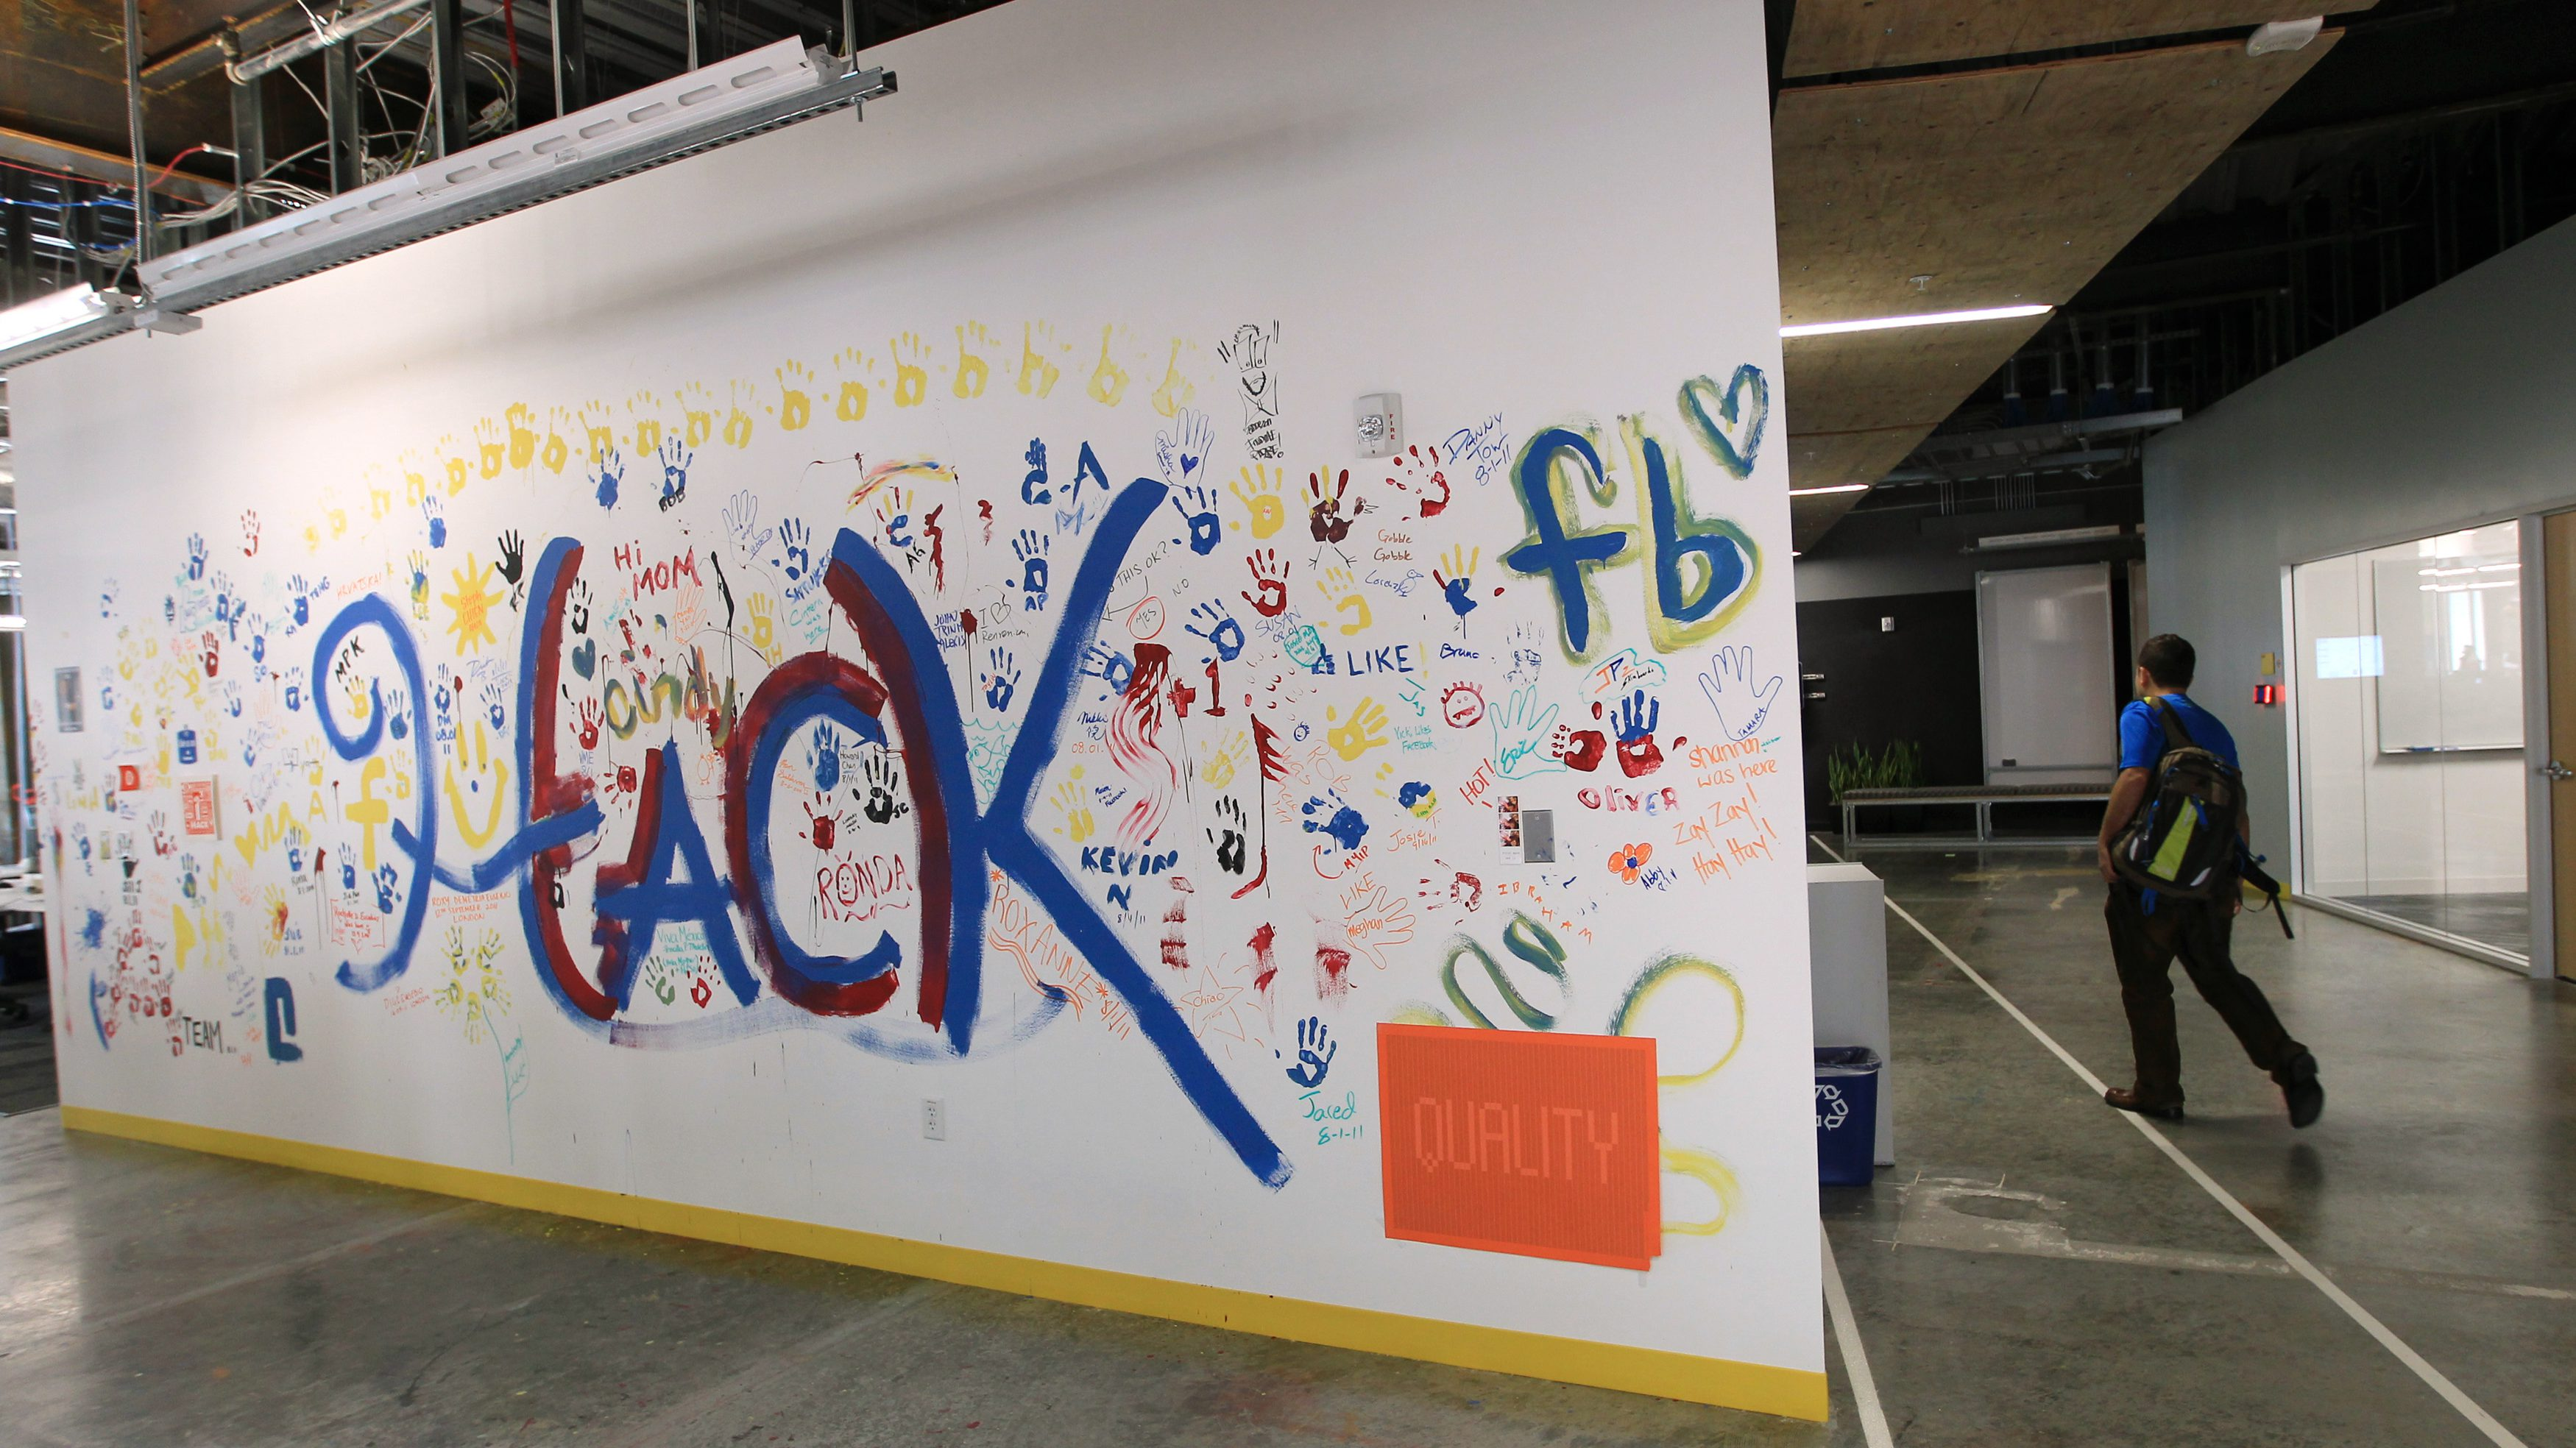 An art and message board is seen in a hallway at the new headquarters of Facebook in Menlo Park, California